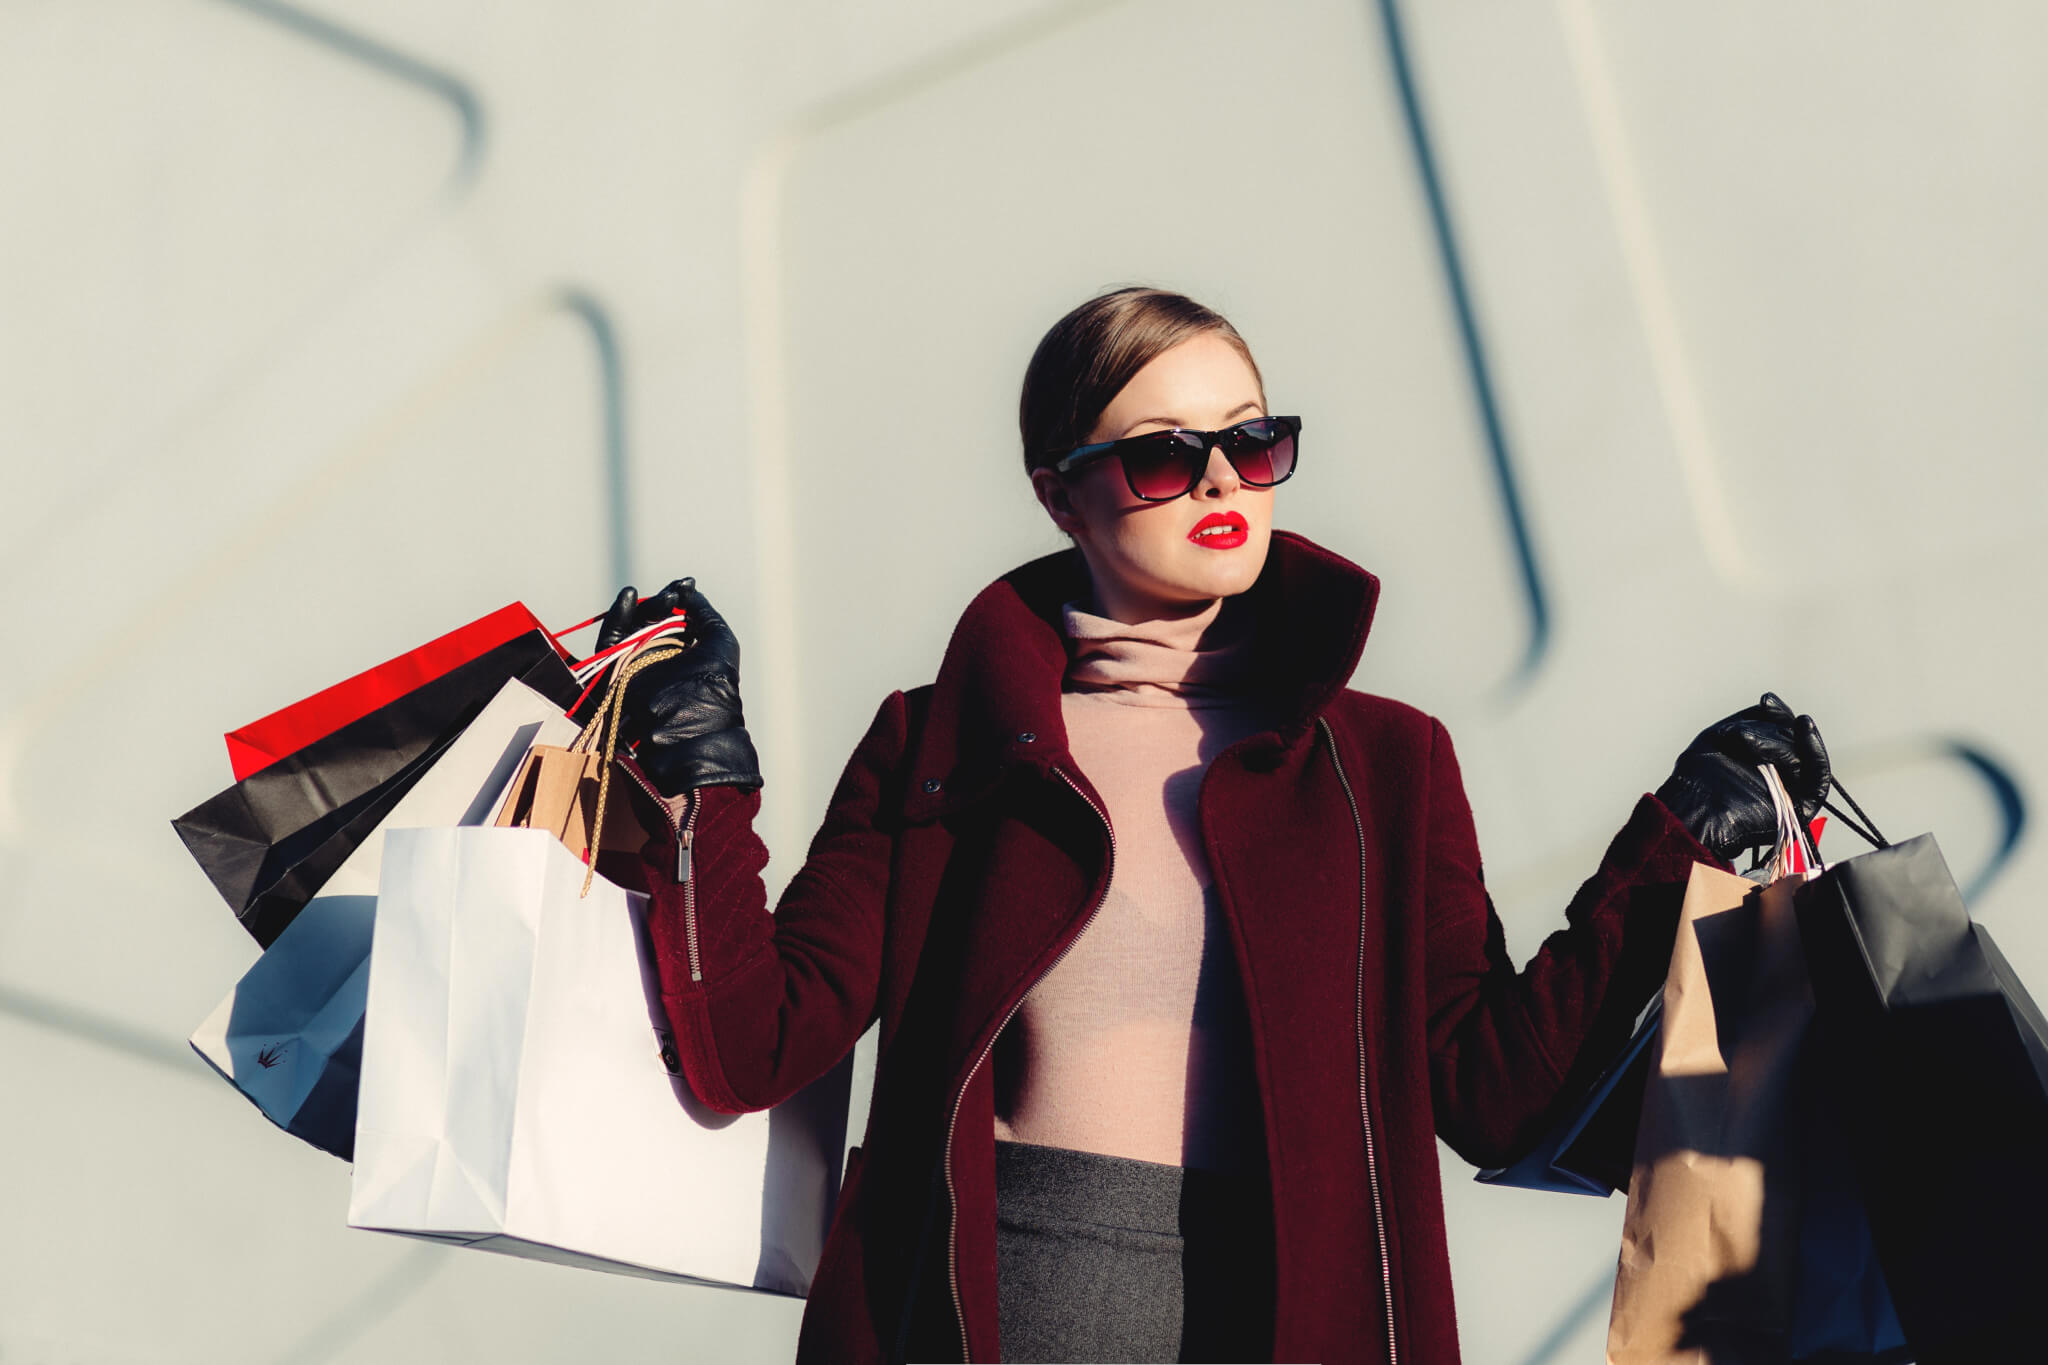 Savvy Retailers Leverage Technology to Influence the Customer Journey